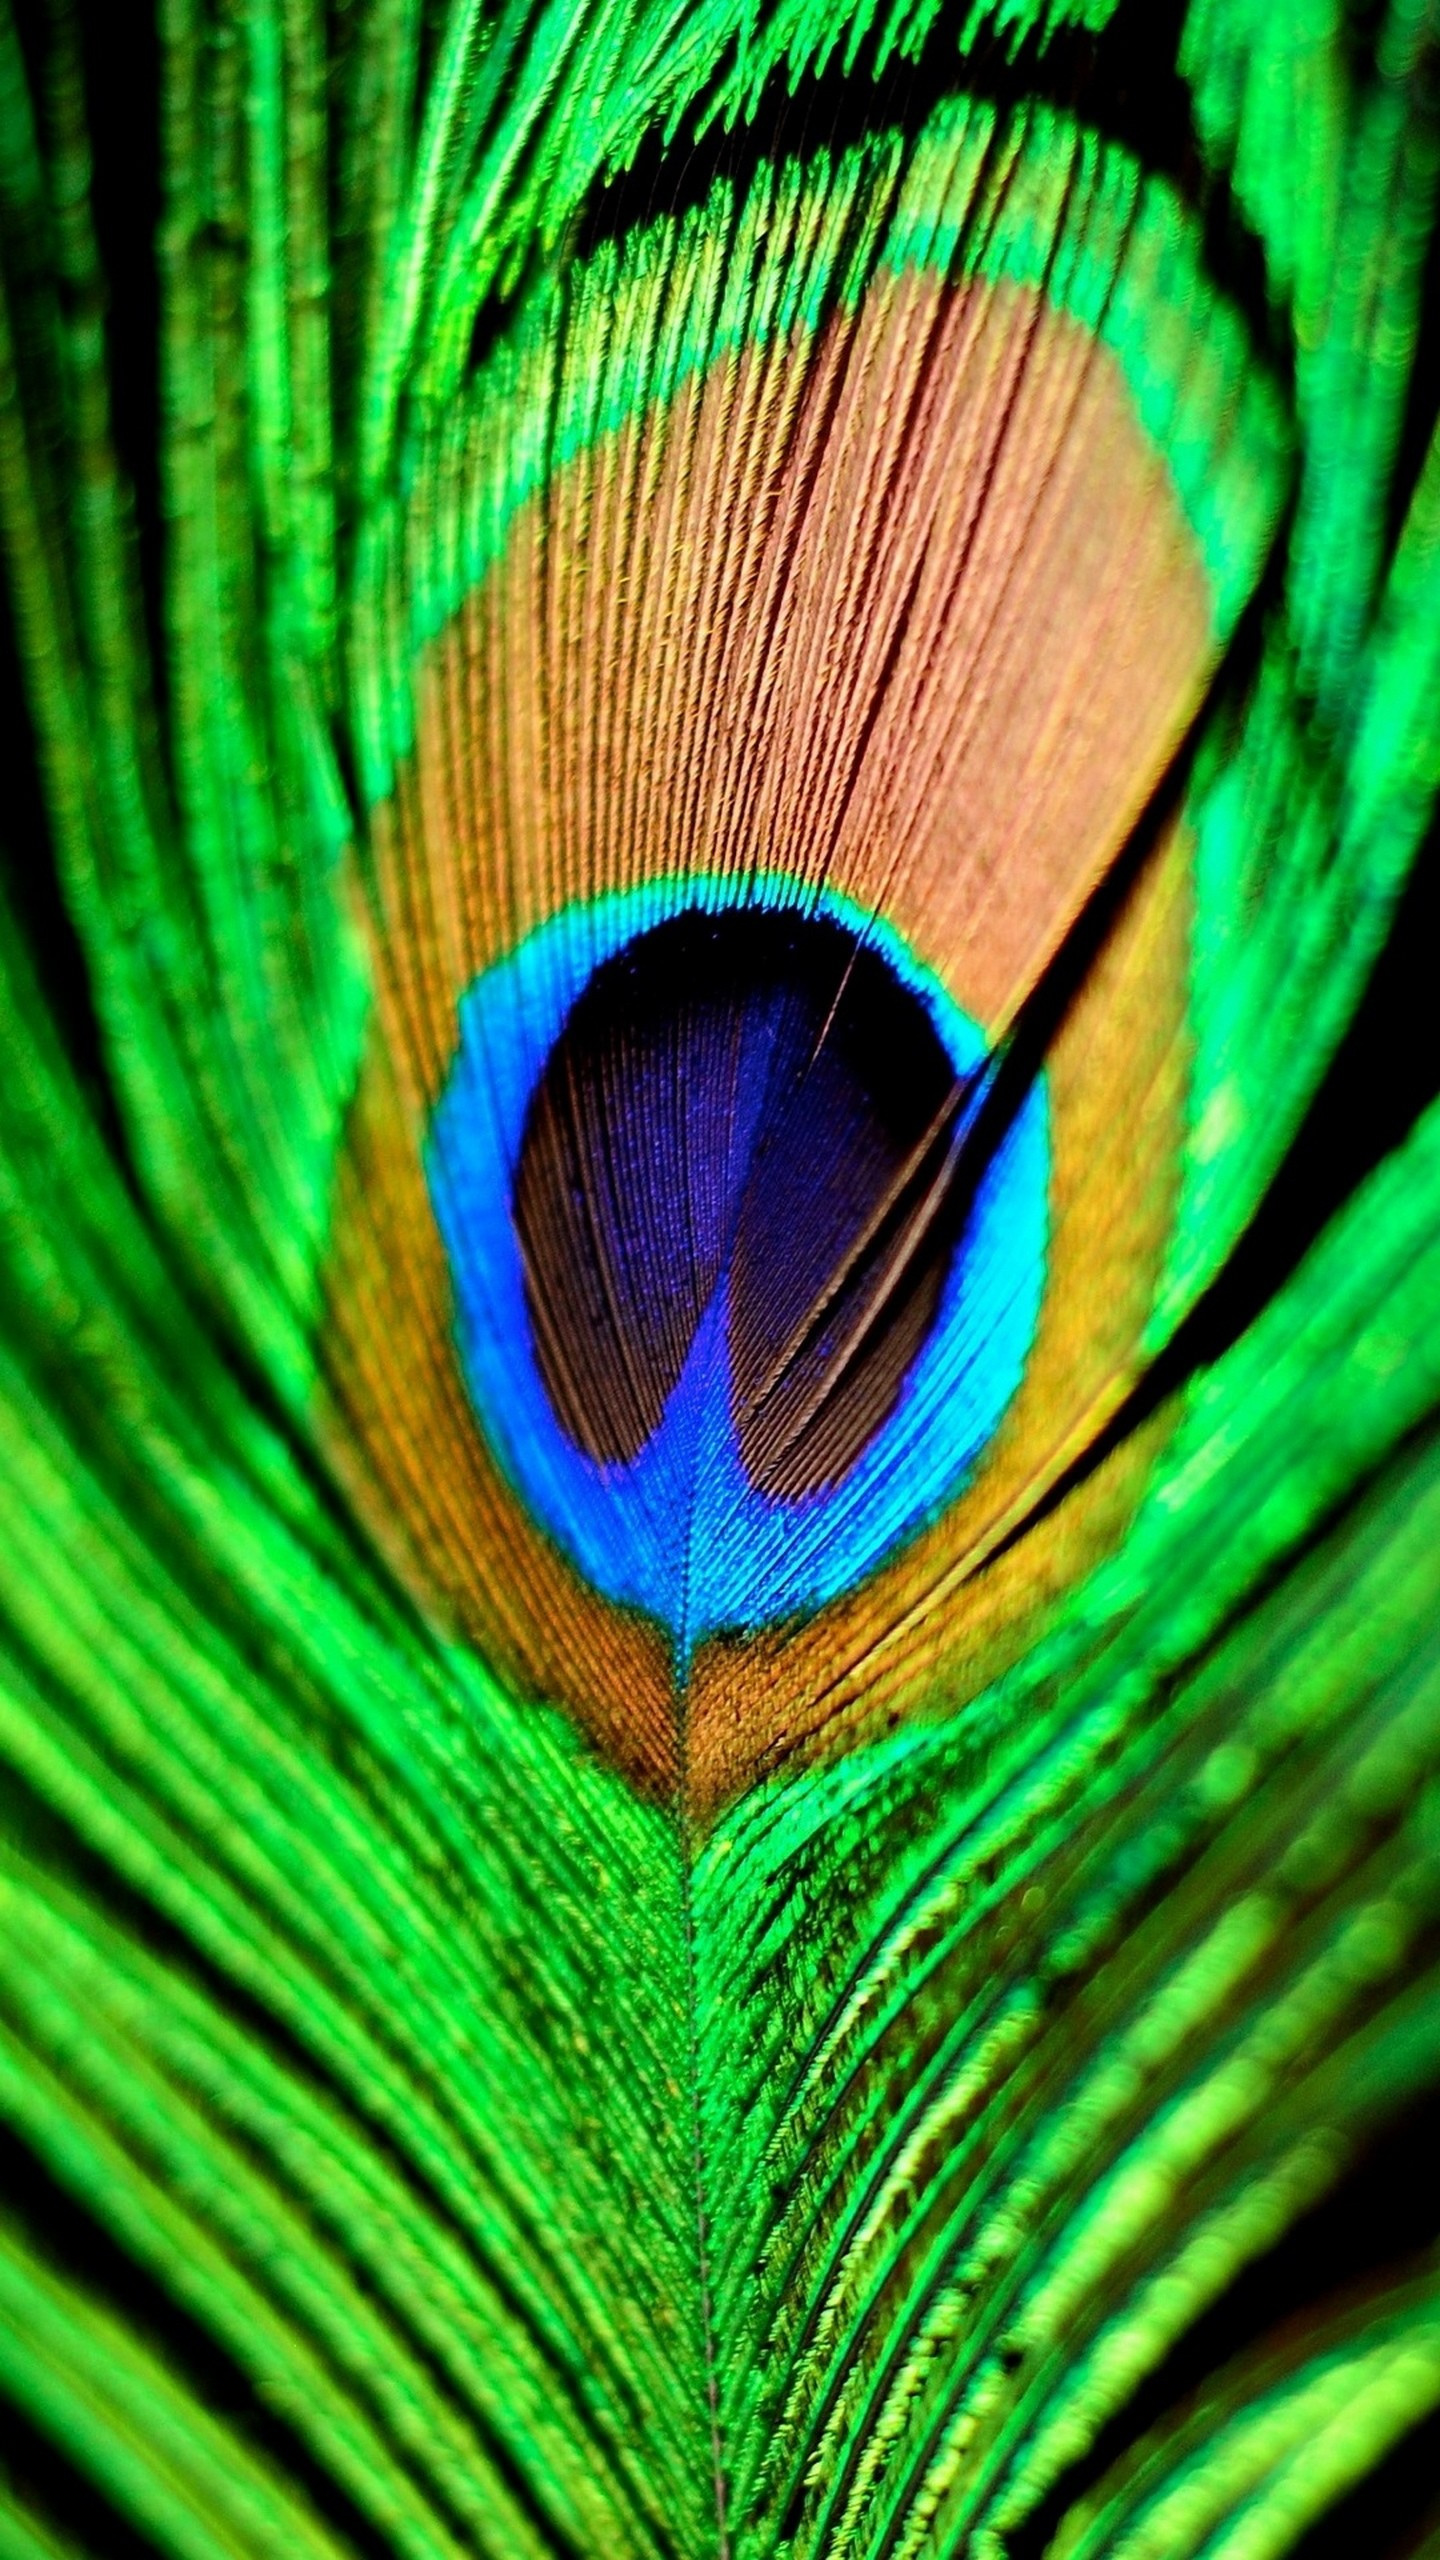 1440x2560 quad hd mobile phone wallpapers  peacock feather